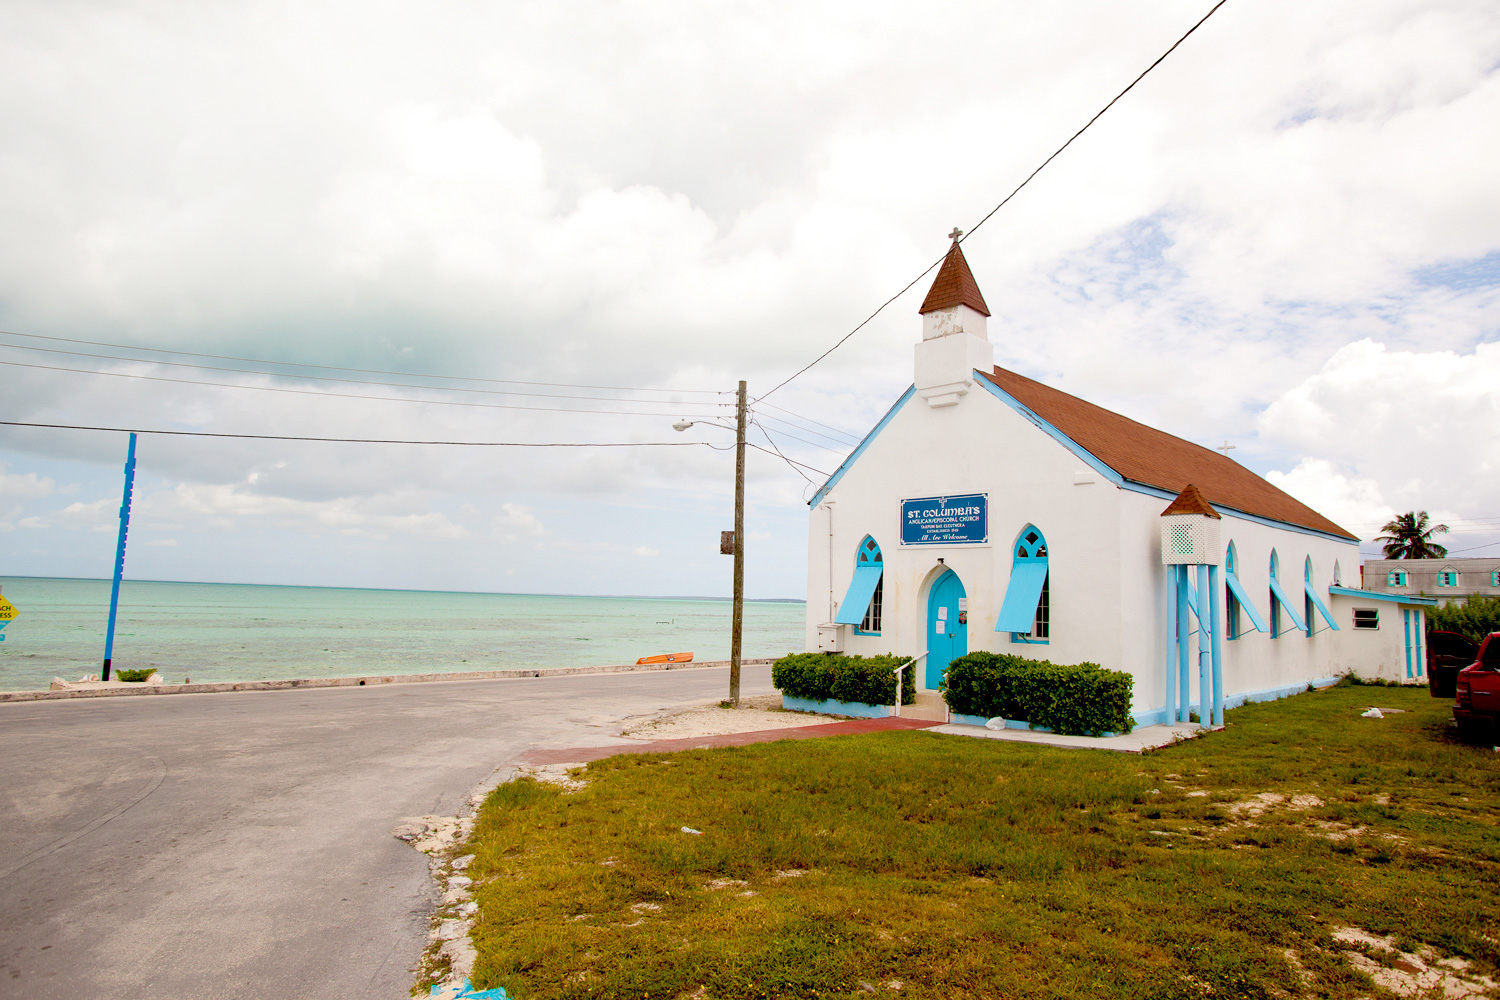 savannah_sound_eleuthera-5